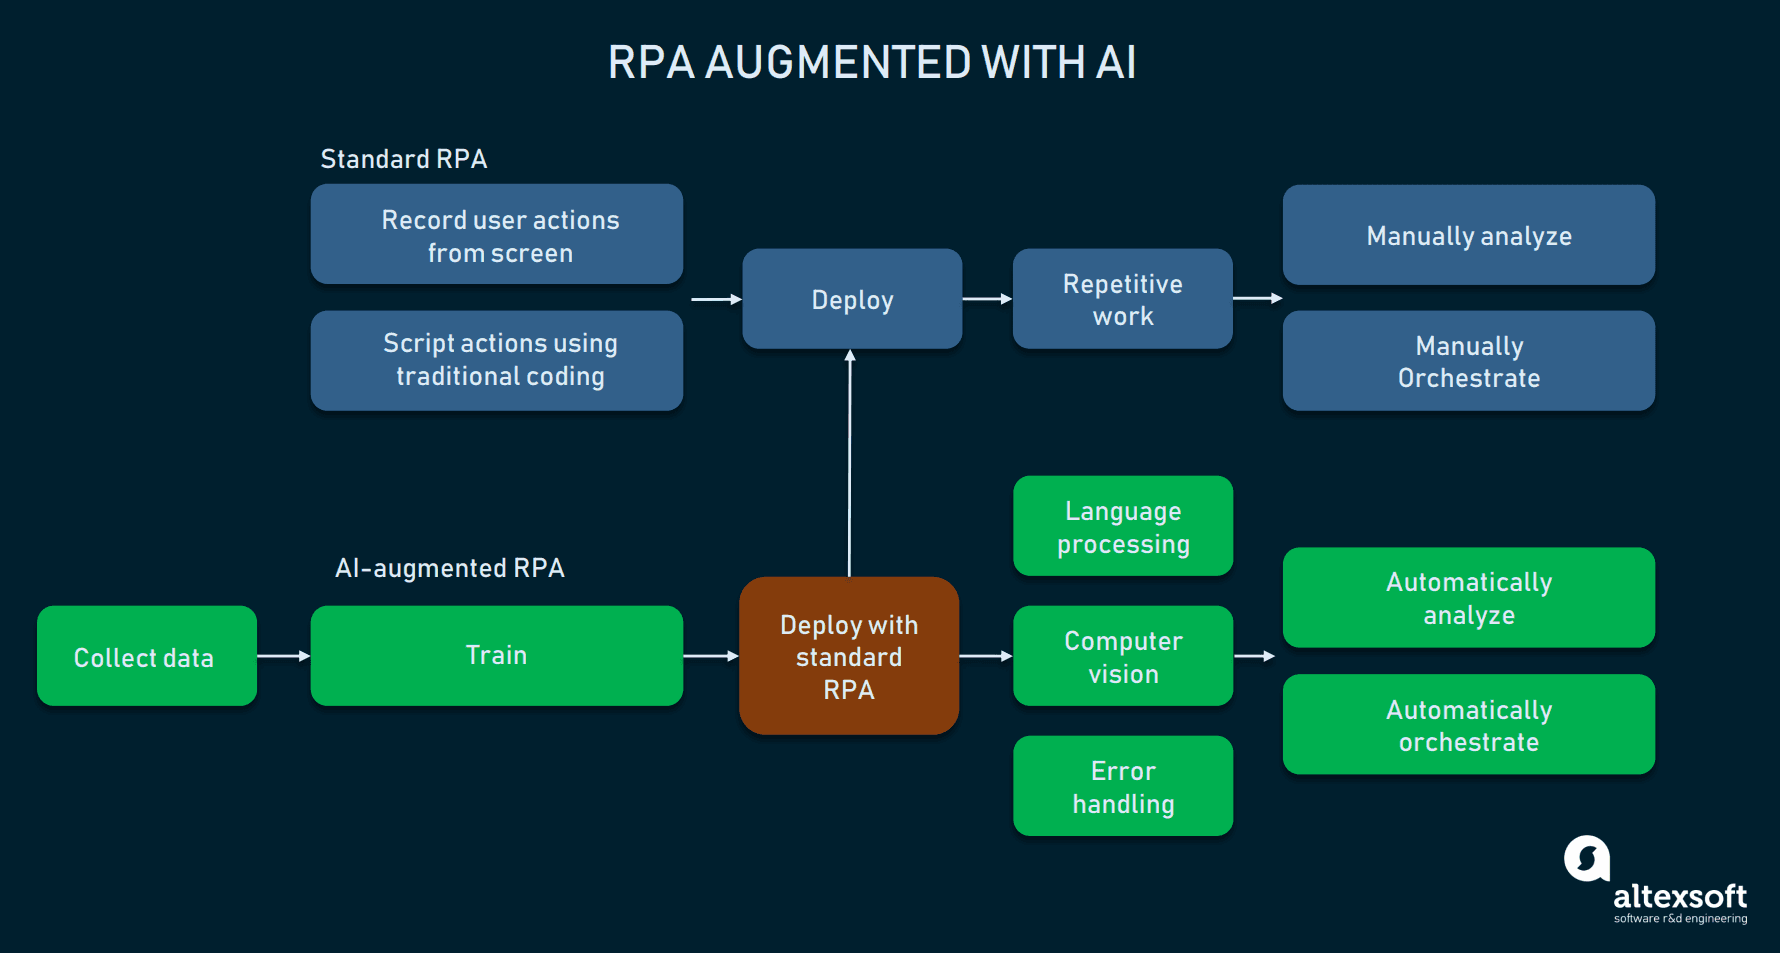 Standard RPA implementation can be augmented with additional AI-driven capabilities.